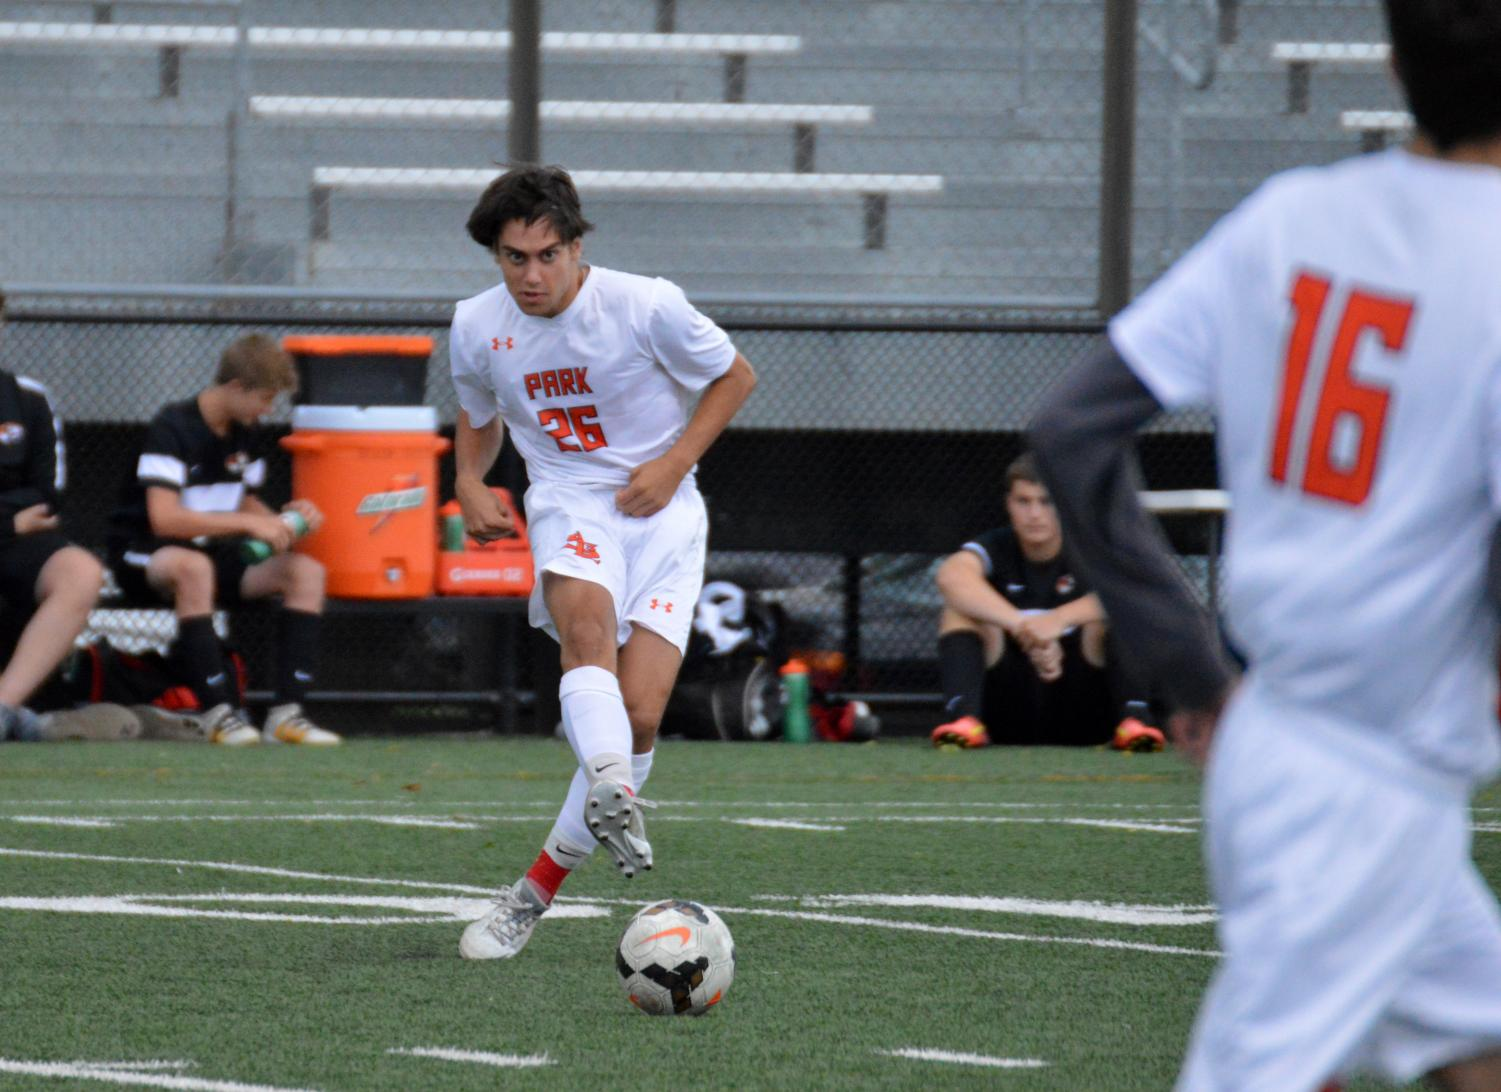 Sophomore Thomas Salamzadeh passes the ball during a boys' varsity soccer game Sept. 5. Salamzadeh will be one of four team captains for the fall 2018 season.